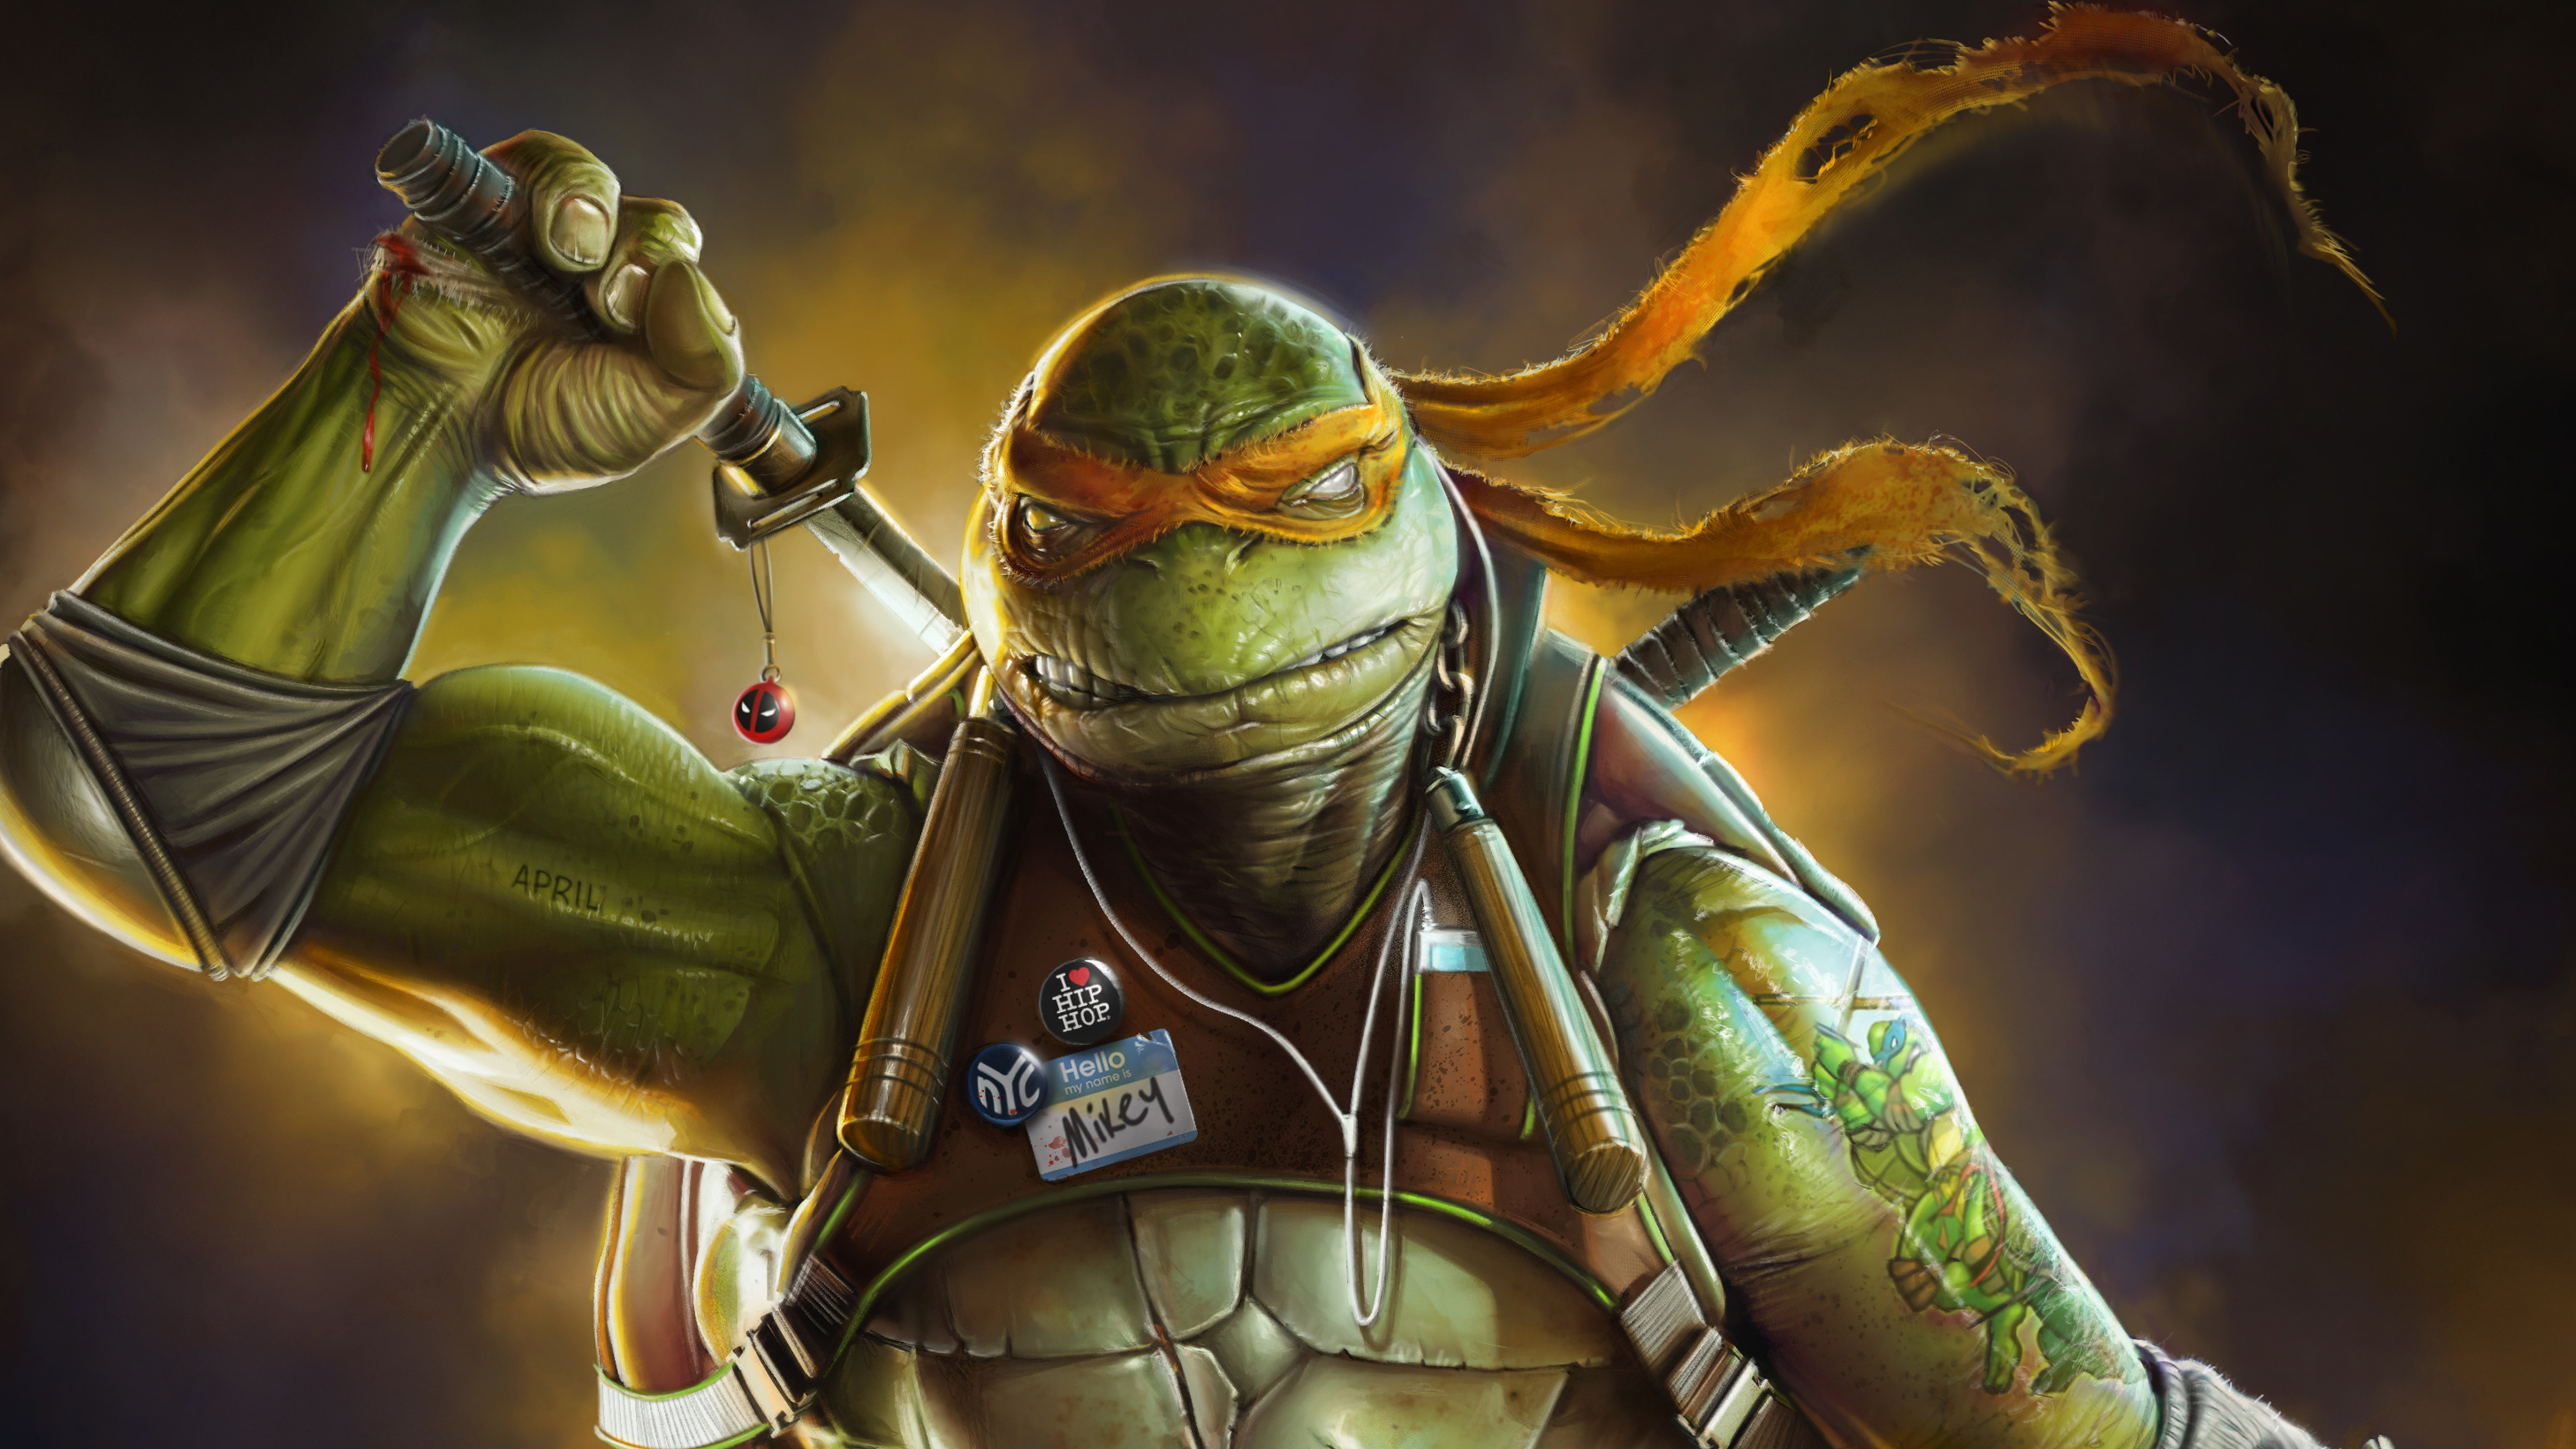 Wallpaper 4k Ninja Turtle Art 4k Wallpapers Artist